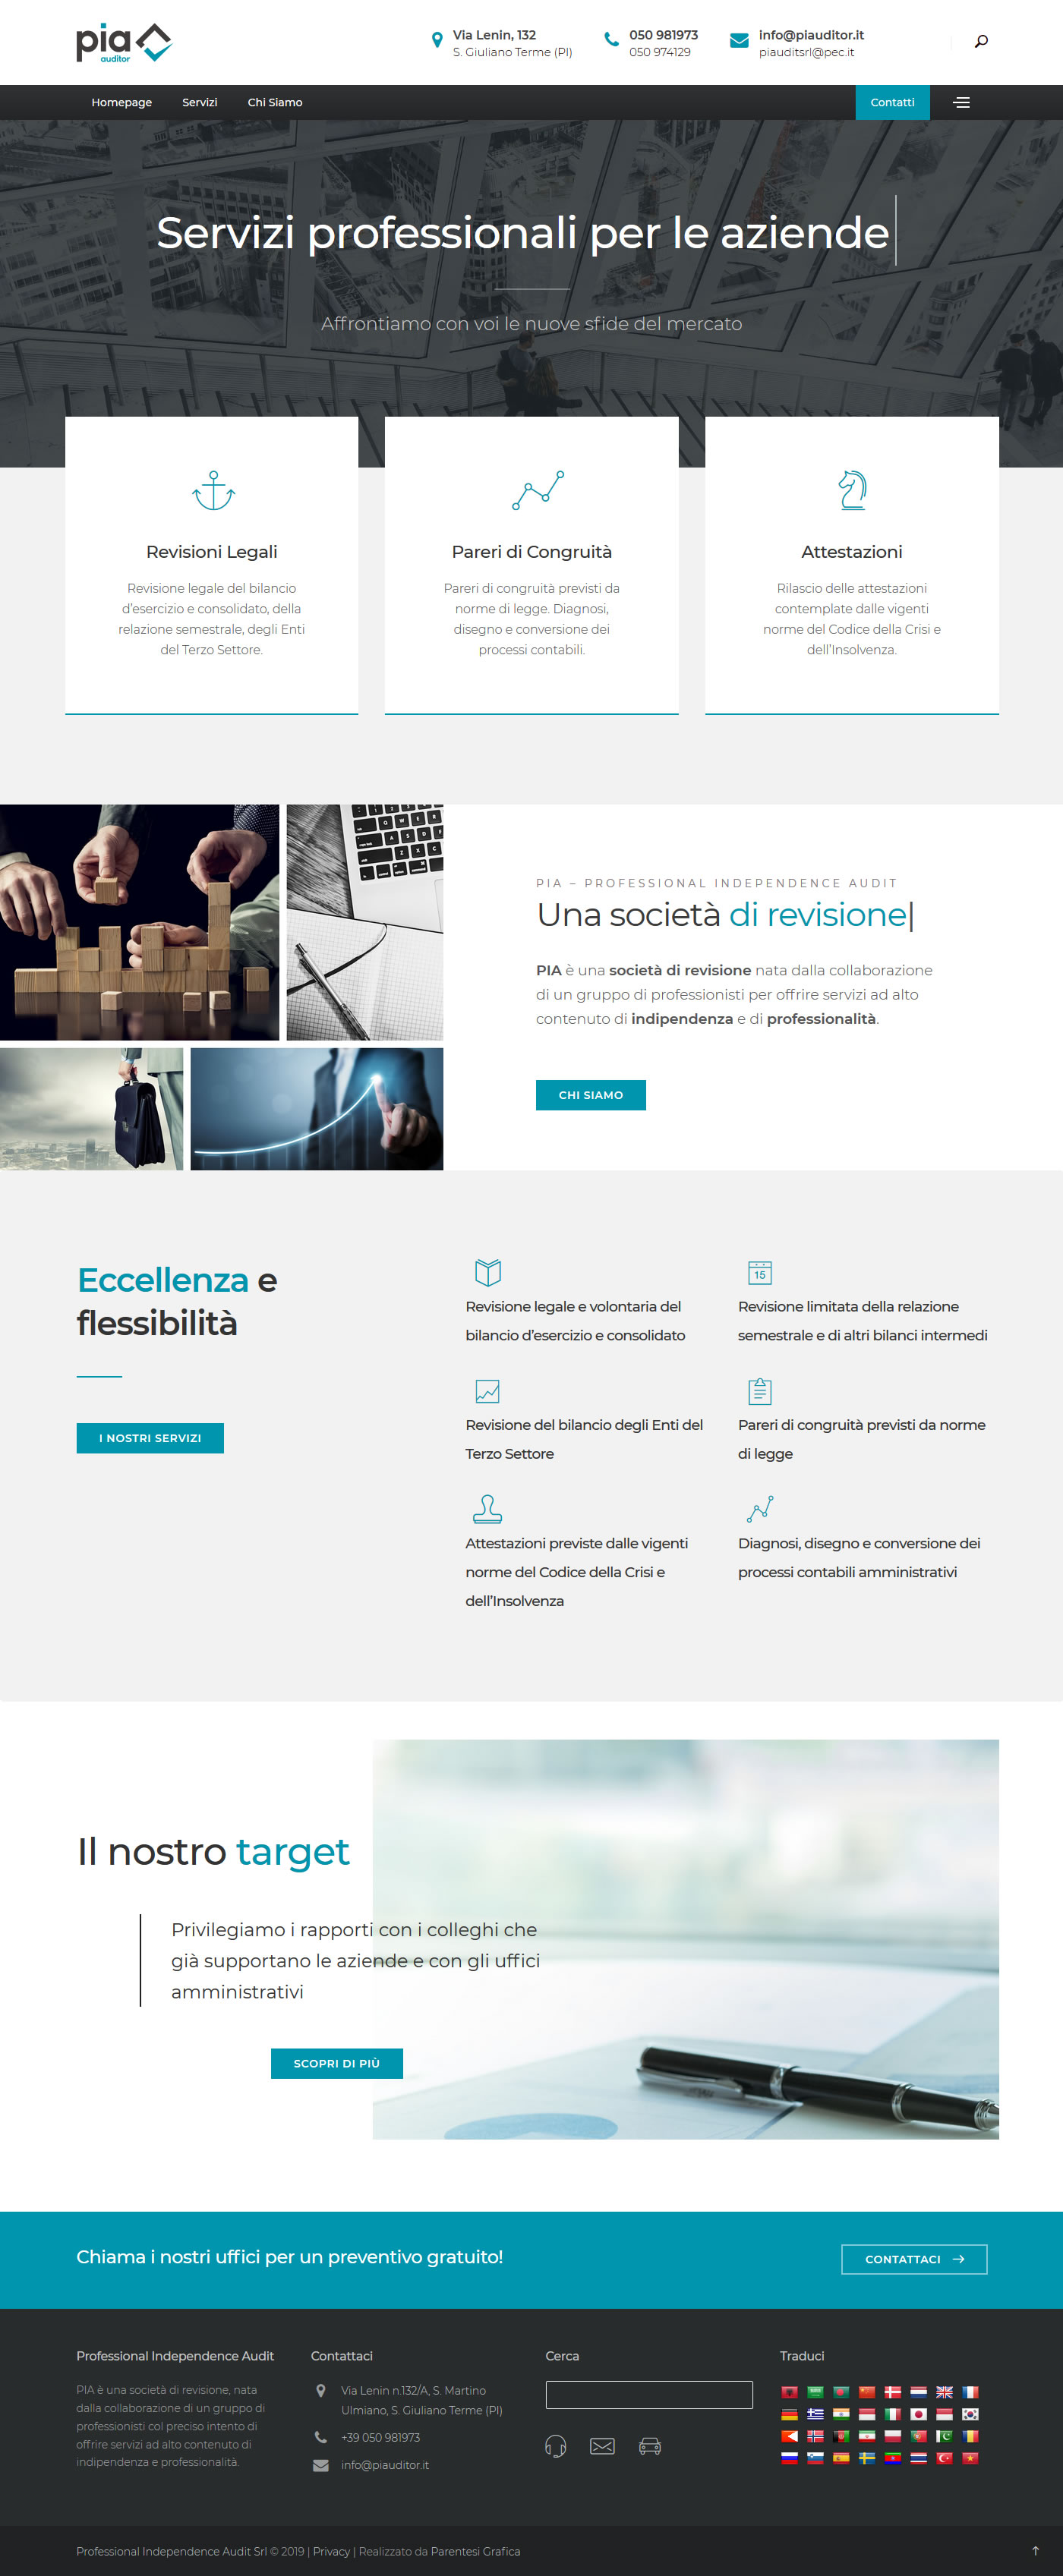 Sito web di PIA Professional Independence Audit